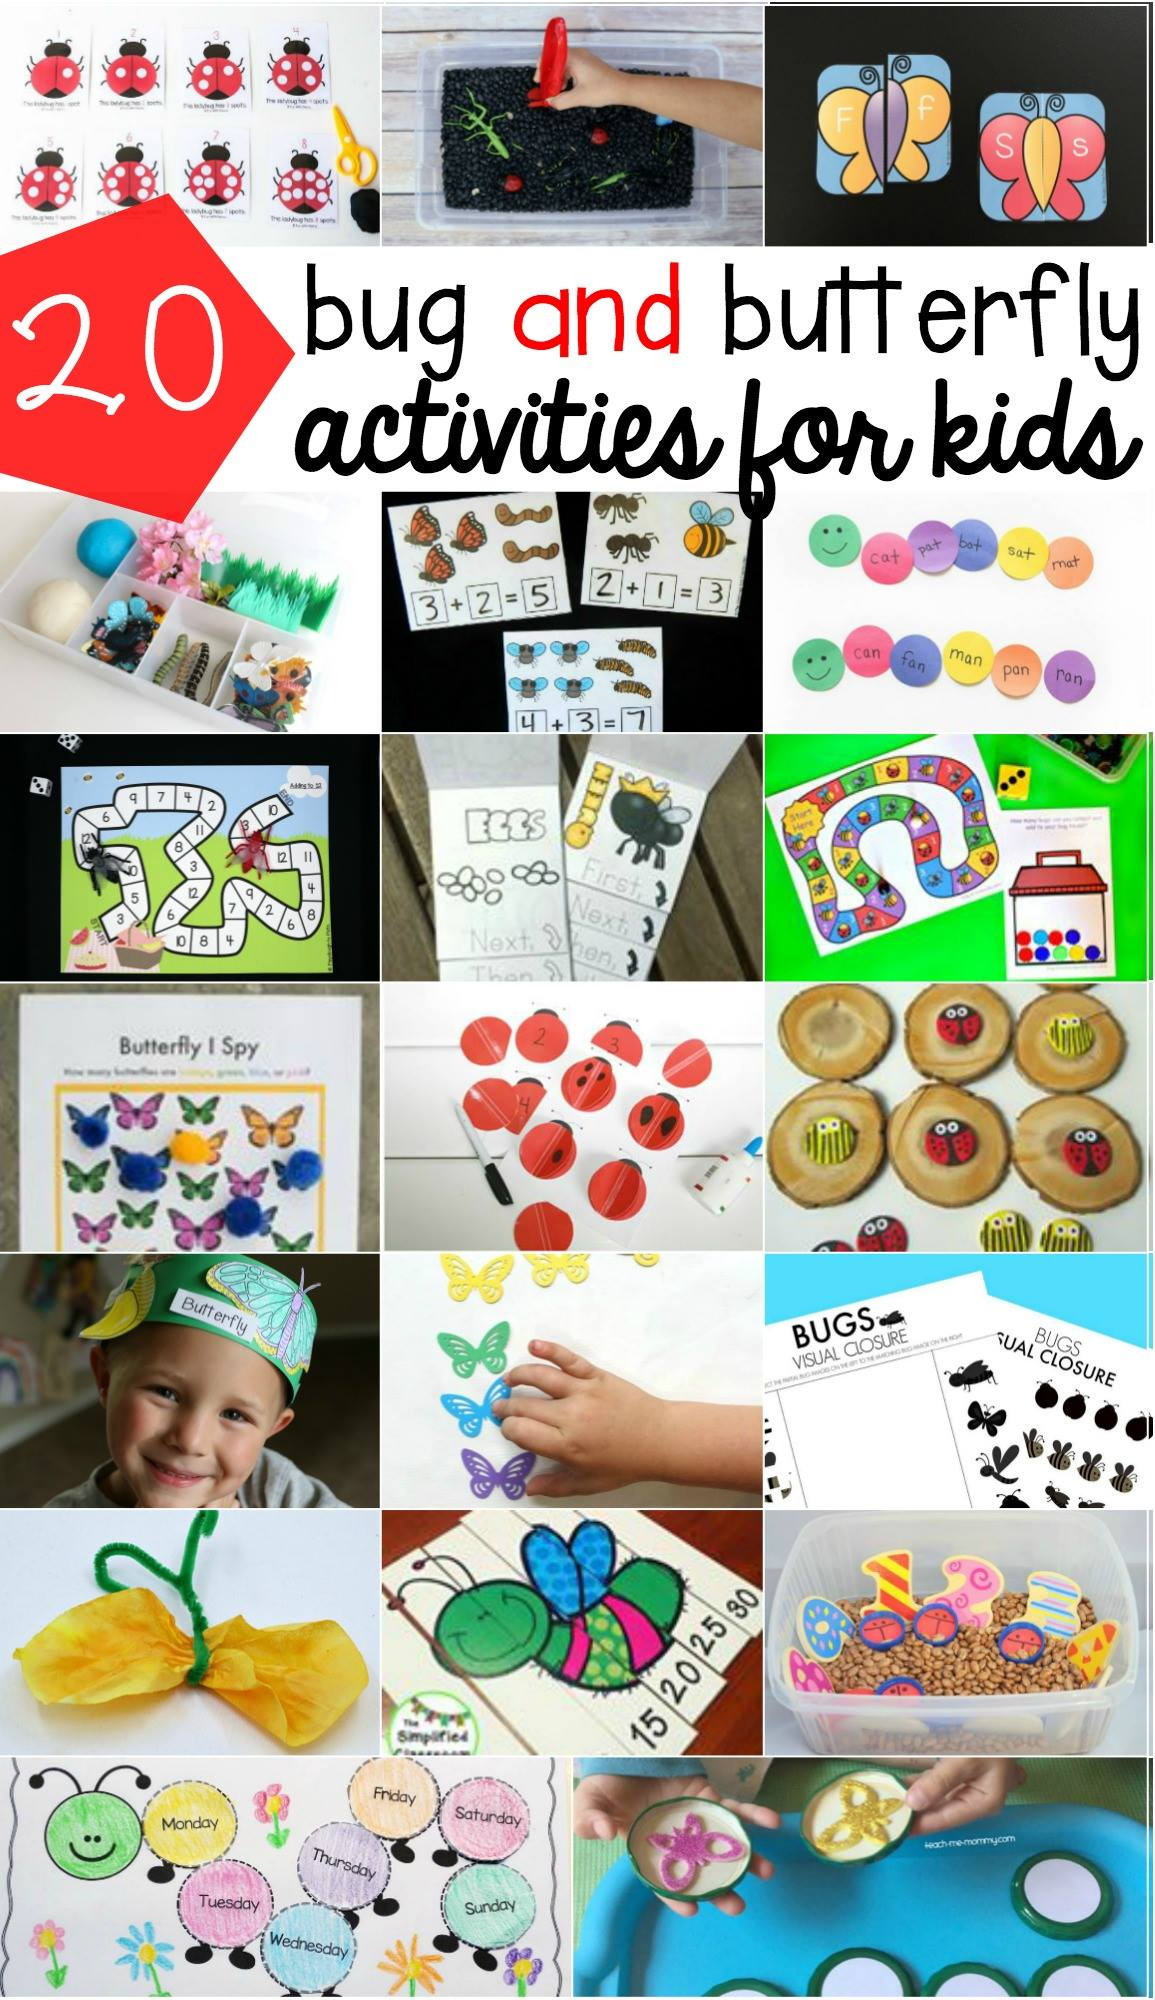 Bugs and butterfly activities for kids